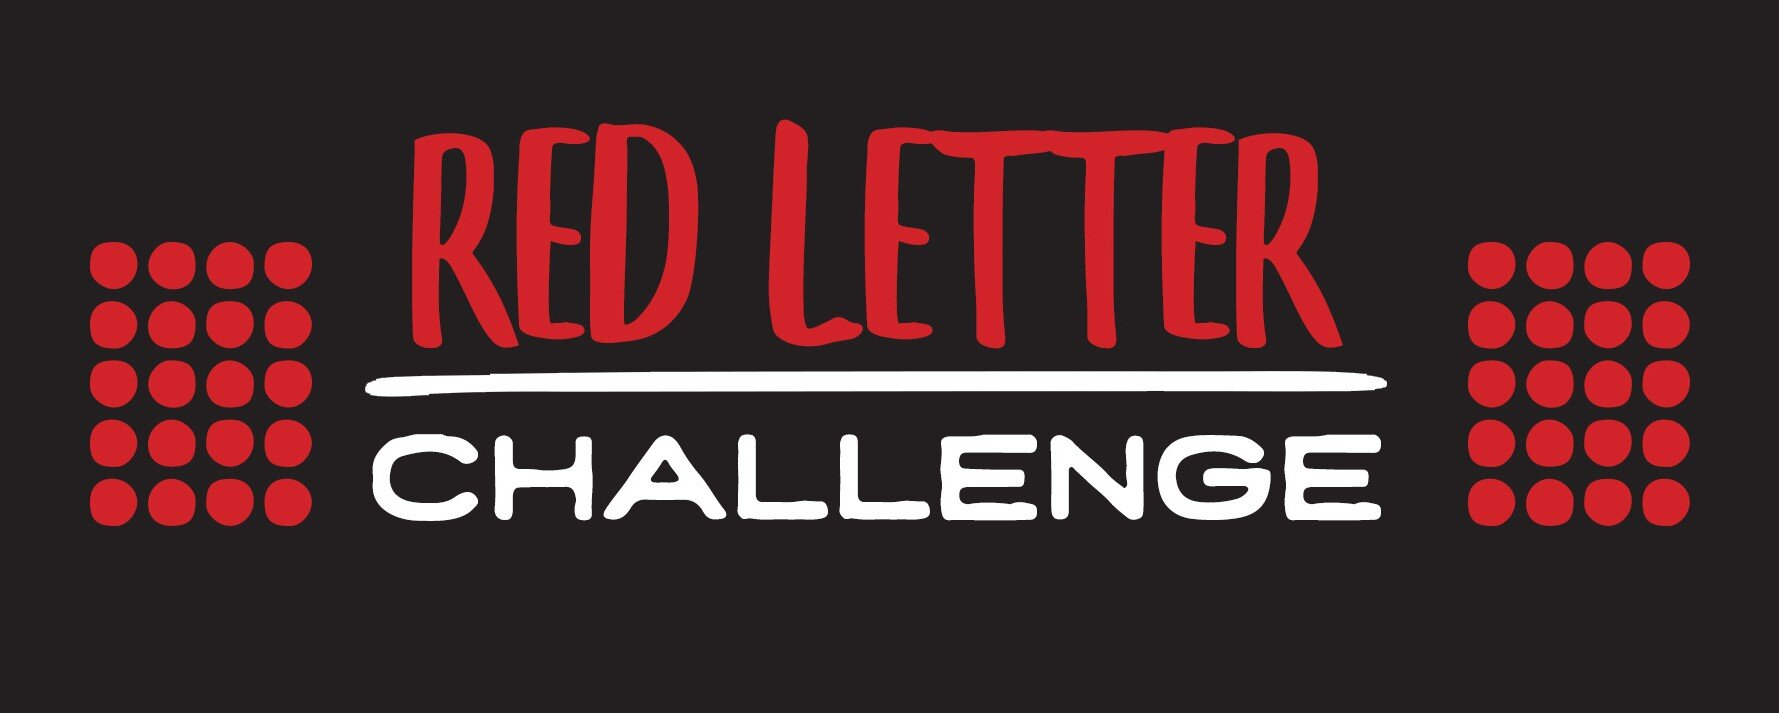 Red Letter Challenge - Click on image for sermon audio.